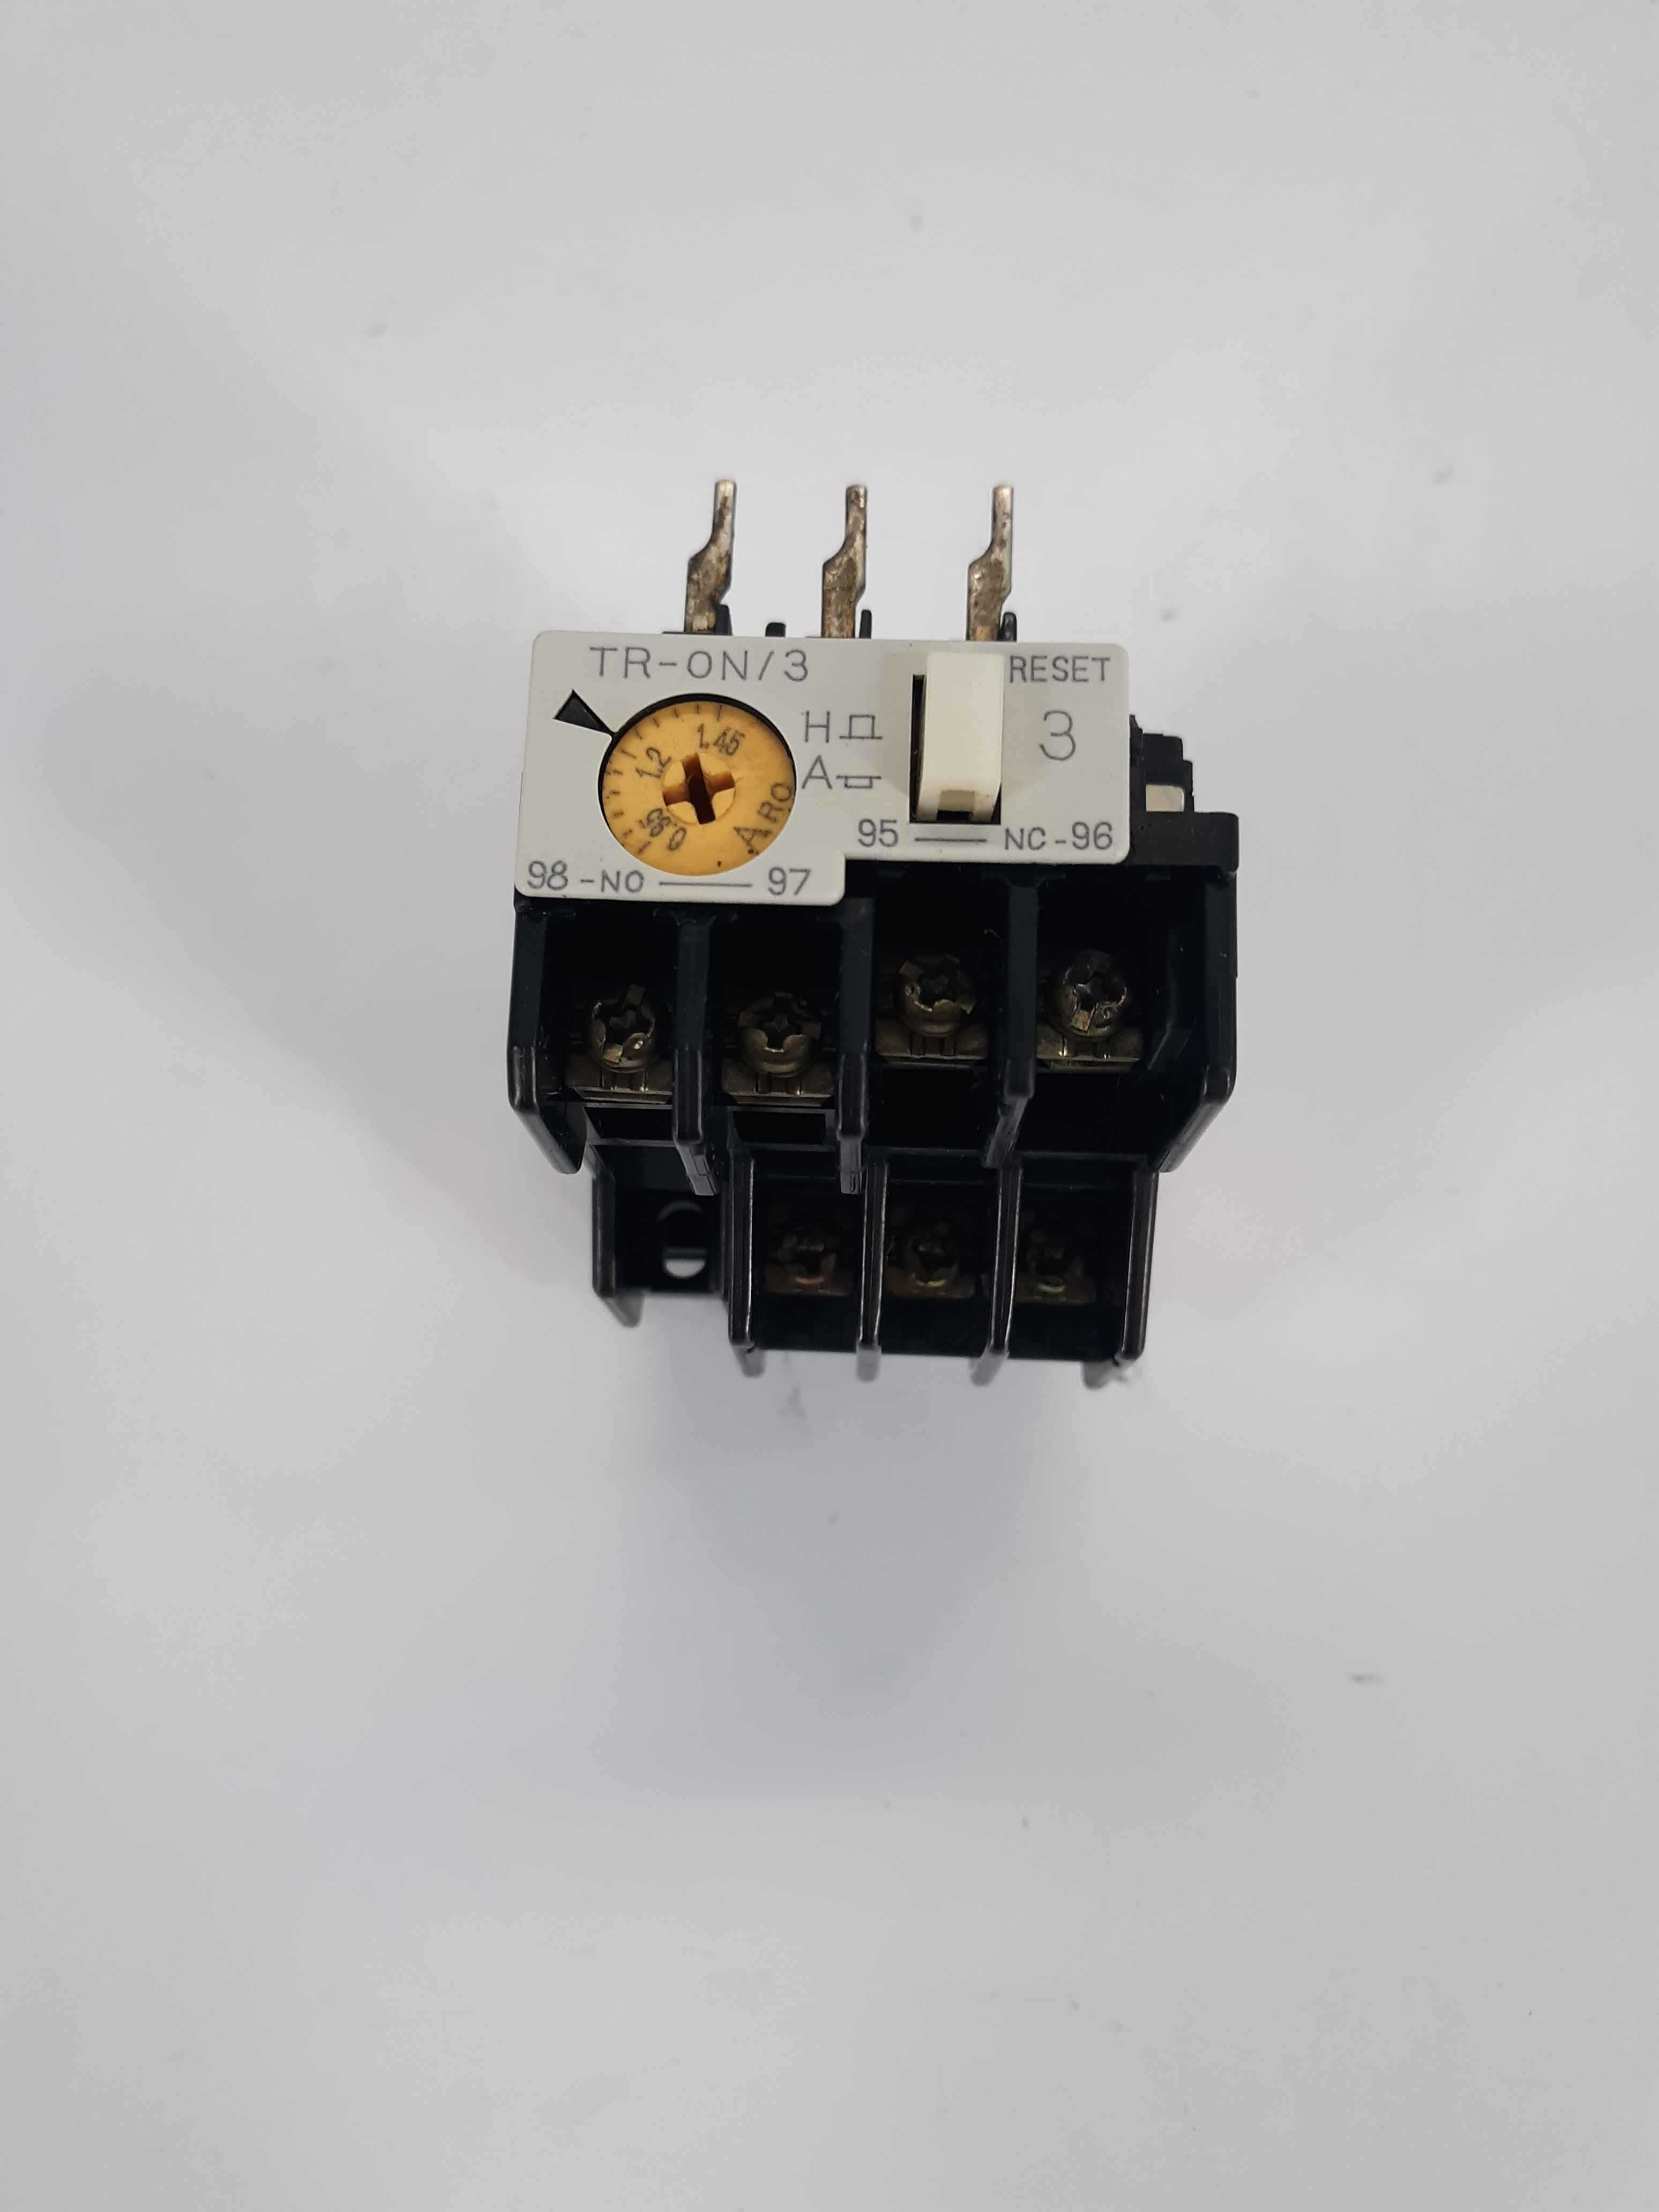 Fuji TR-ON/3 4NR0AH overload relay 0.95-1.45A